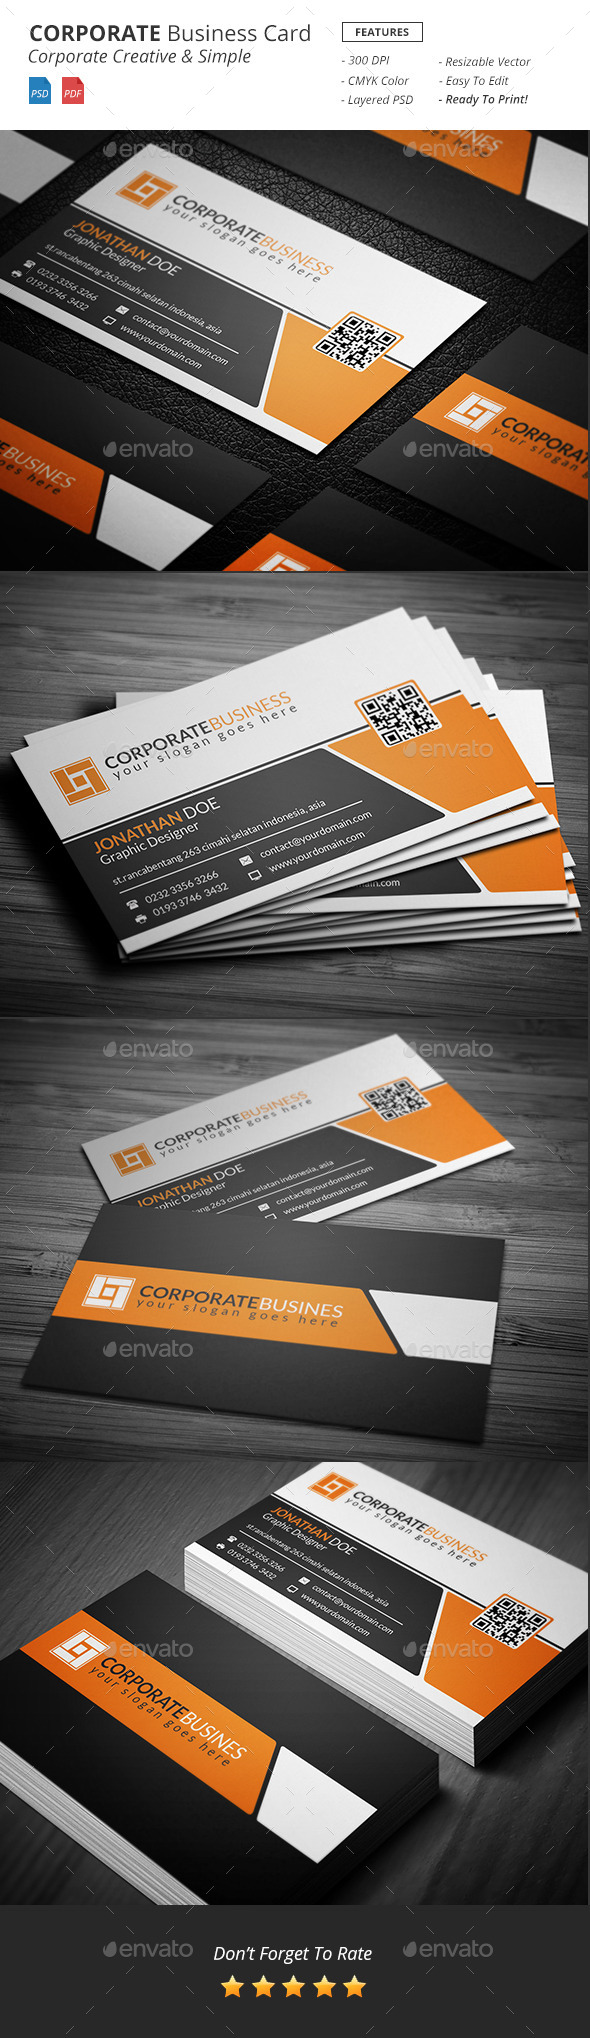 GraphicRiver Corporate Business Card Template 11150313